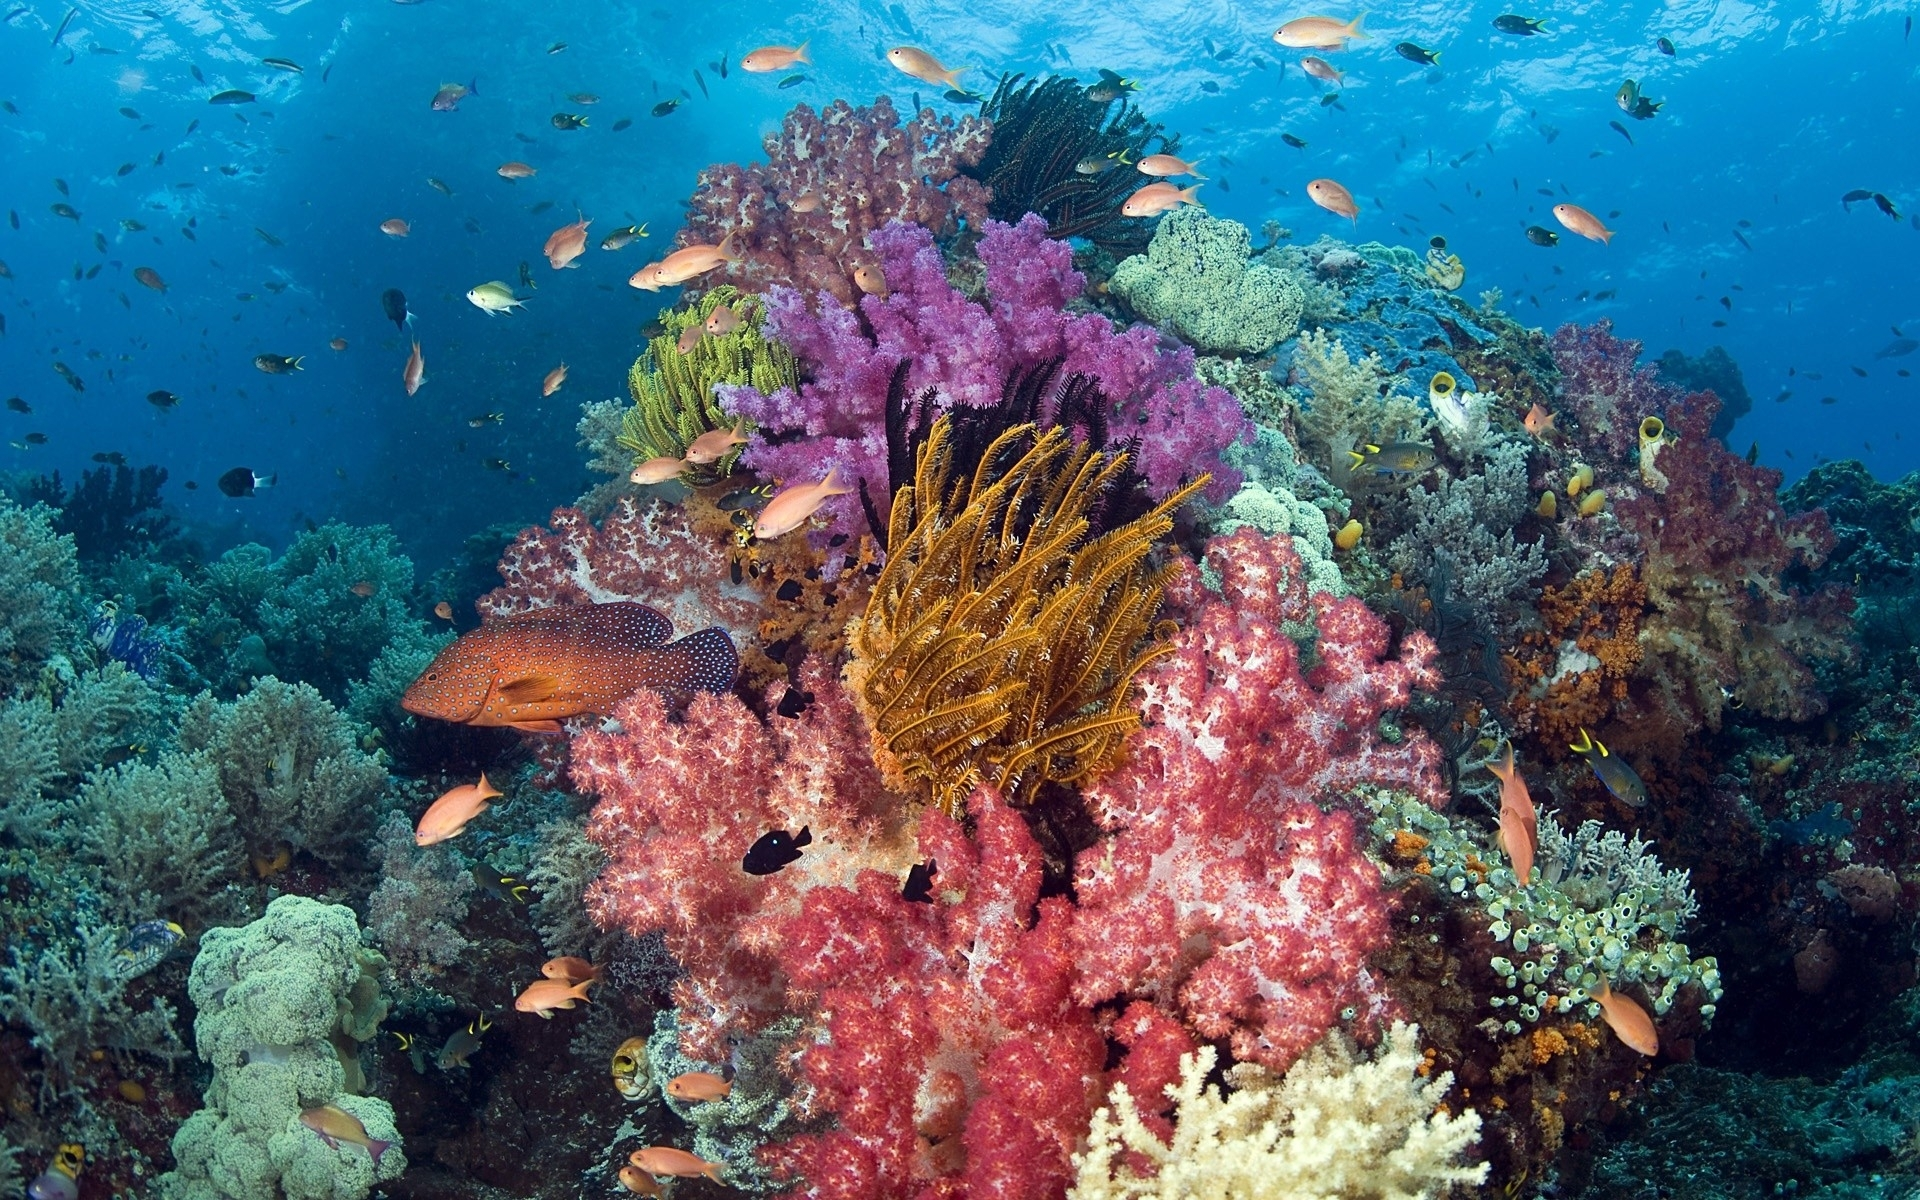 Nature animals fishes tropical underwater coral reef ocean sea